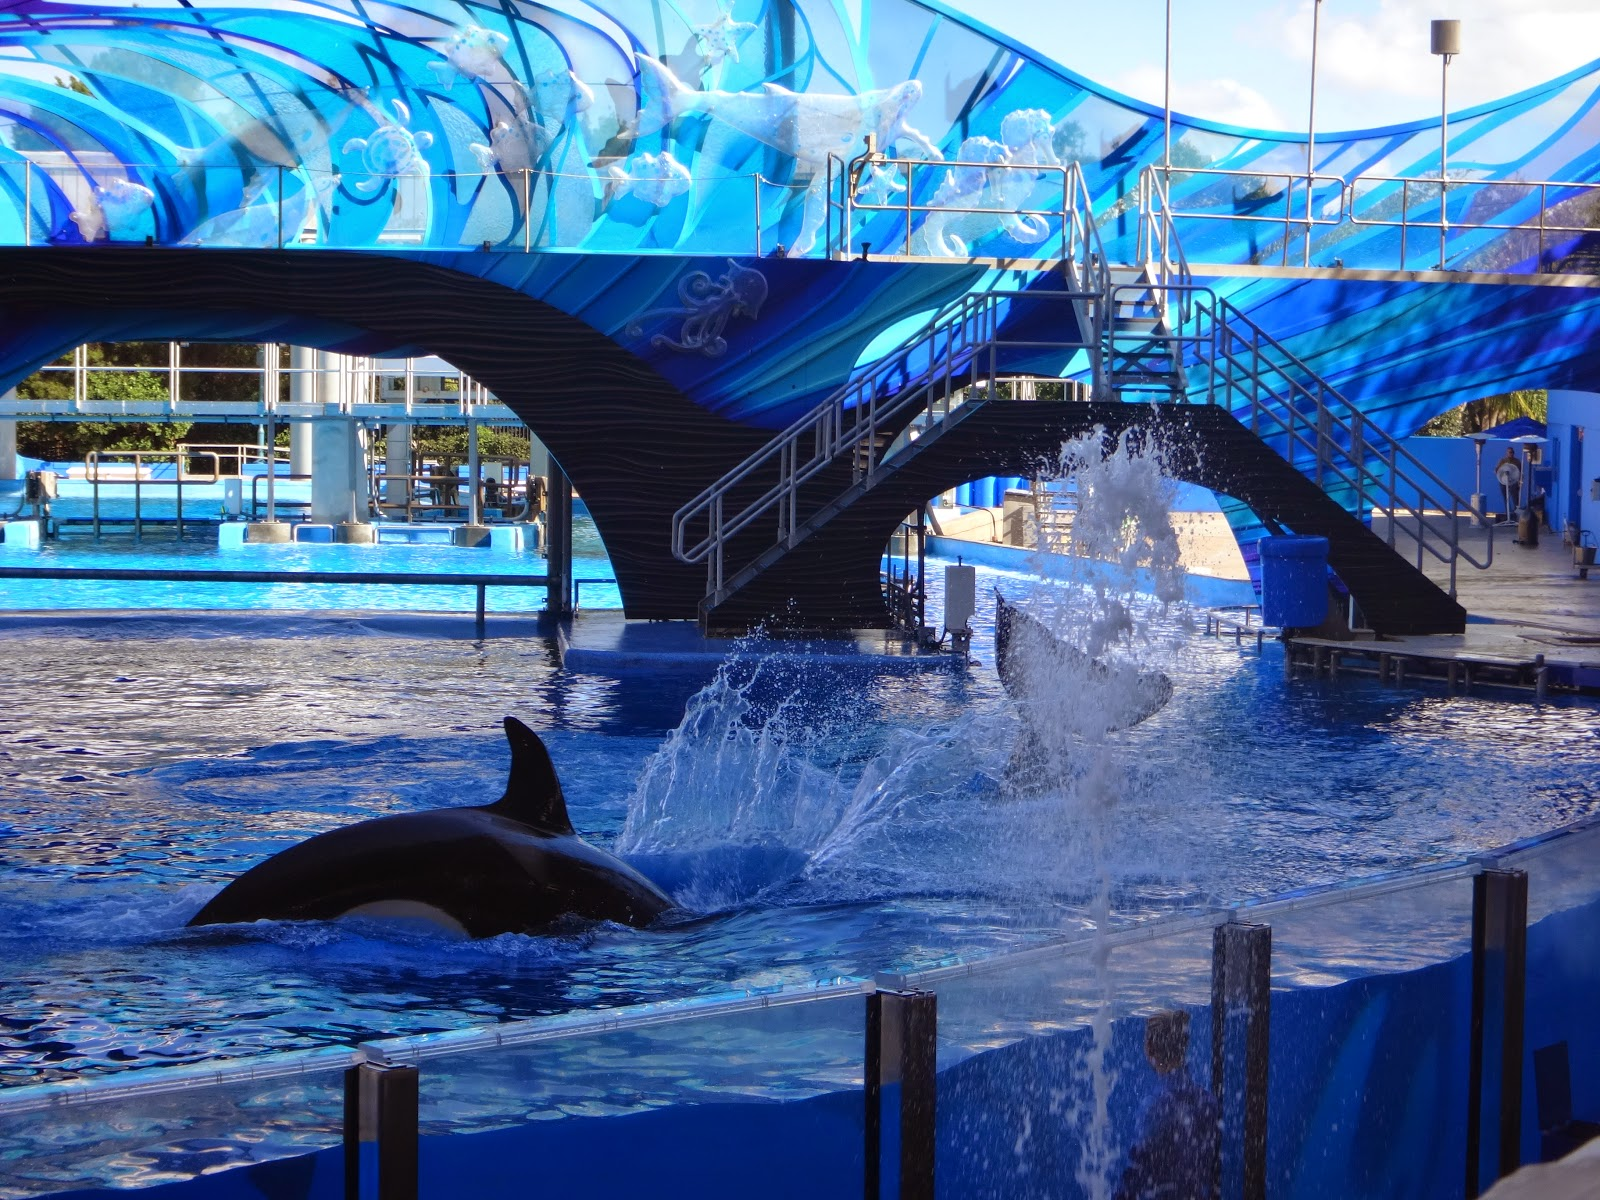 shamu adventure - Parque sea world - orlando, florida